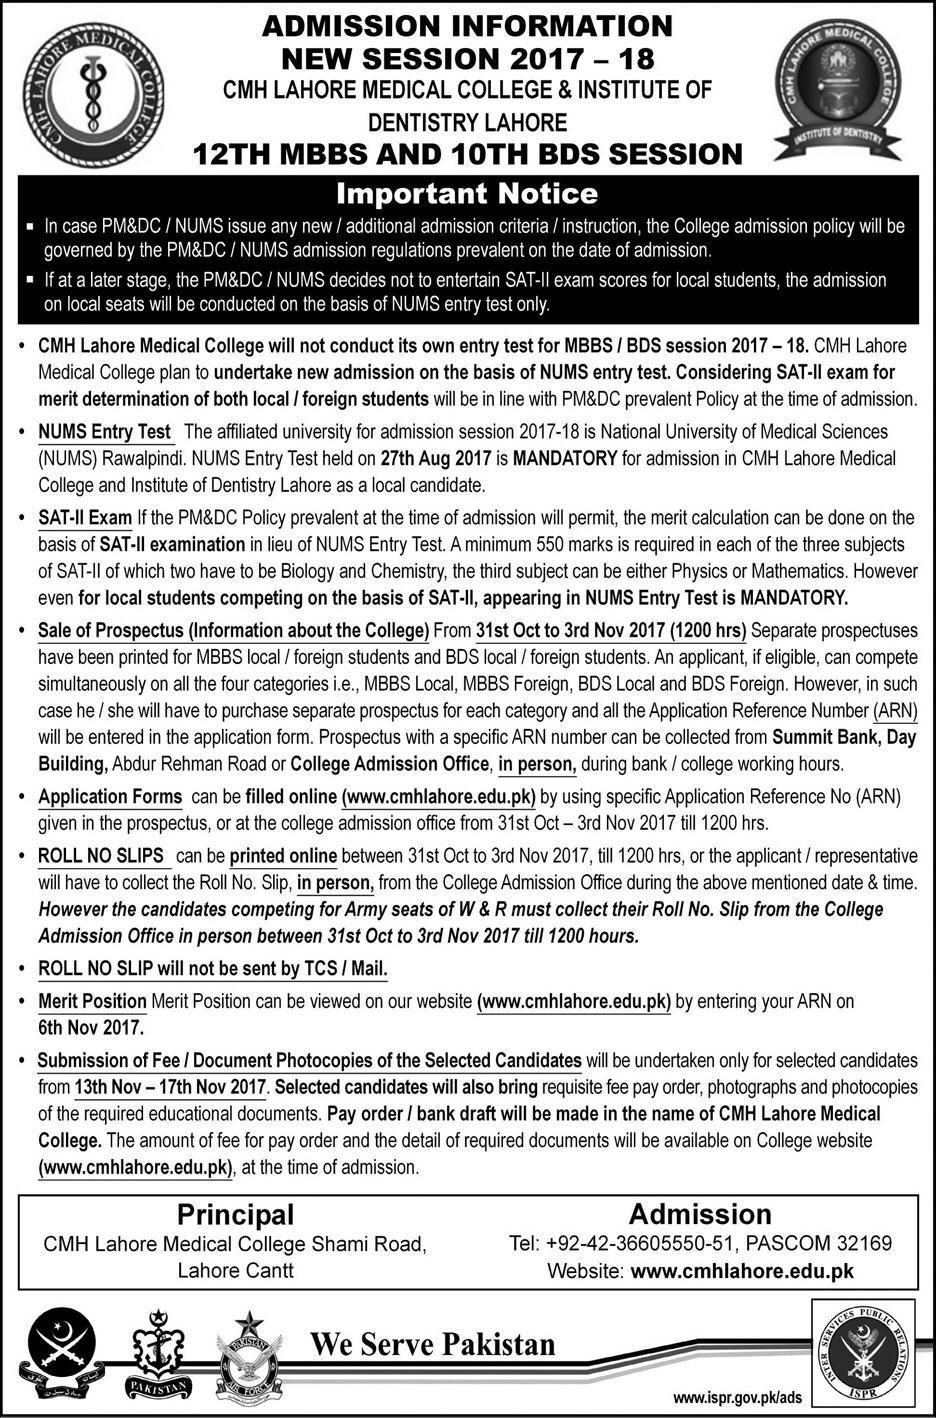 CMH Lahore Medical College & Institute of Dentistry Admission 2017